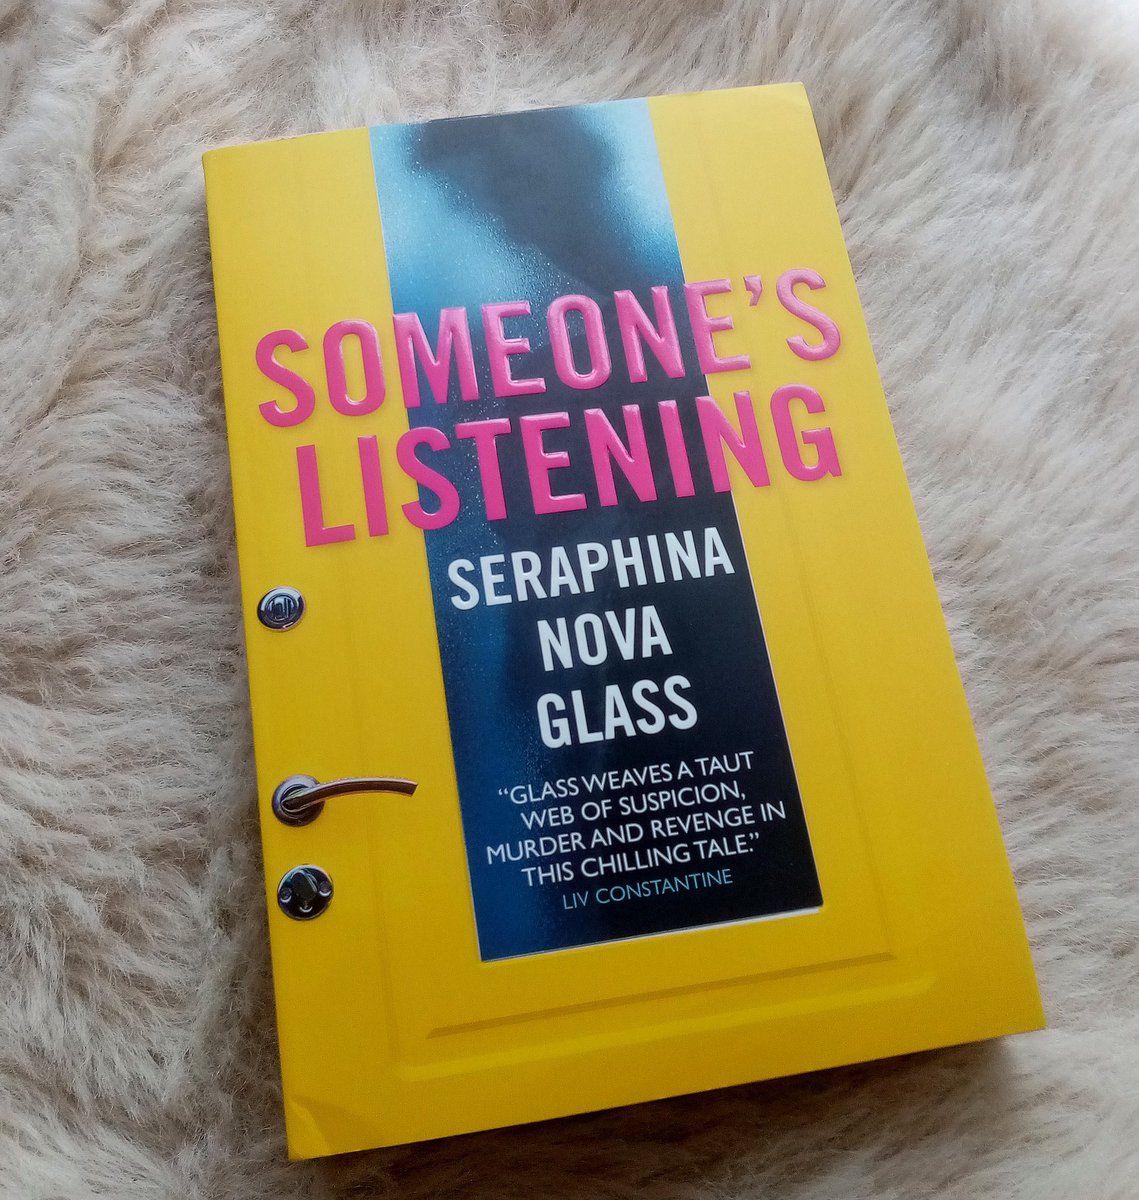 All the thanks to @Sarah_Mather_15 of @TitanBooks for the #Gifted copy of #SomeonesListening by @SeraphinaNova I do love a chilling tale of suspicion, obsession and revenge! Publishing on the 6th of October in paperback and ebook! Definitely one to watch out for 😱 #BookPost https://t.co/BX7FoPB1CD